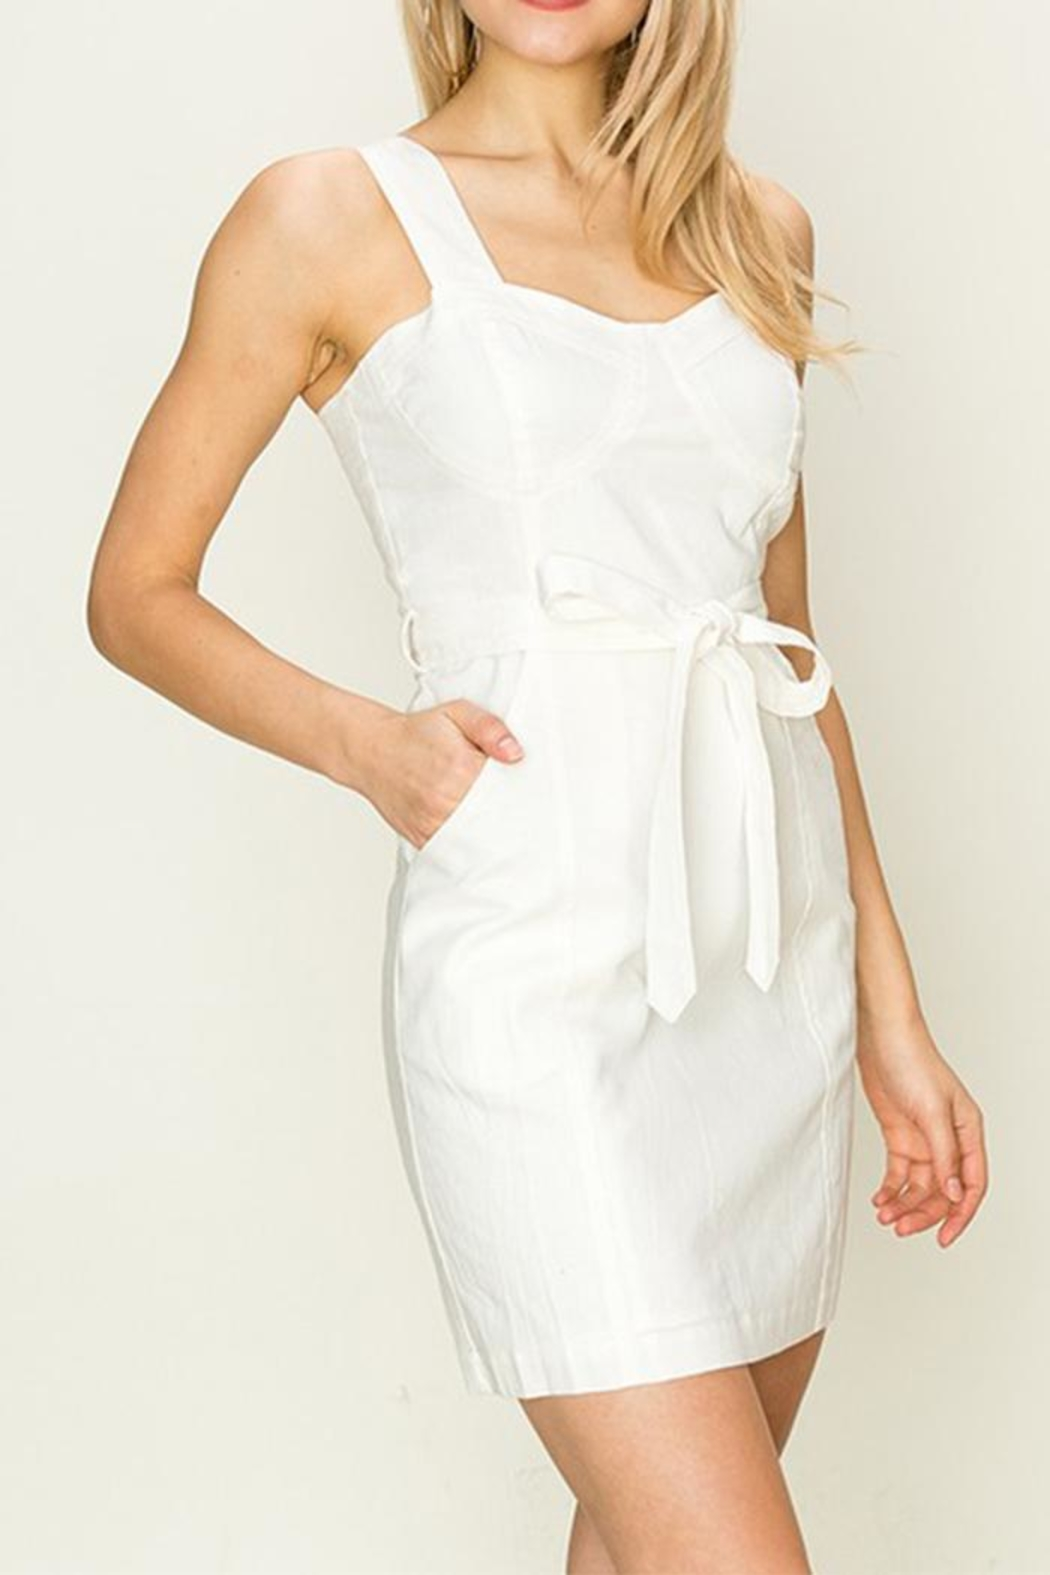 HYFVE White Tie-Front Dress - Front Full Image